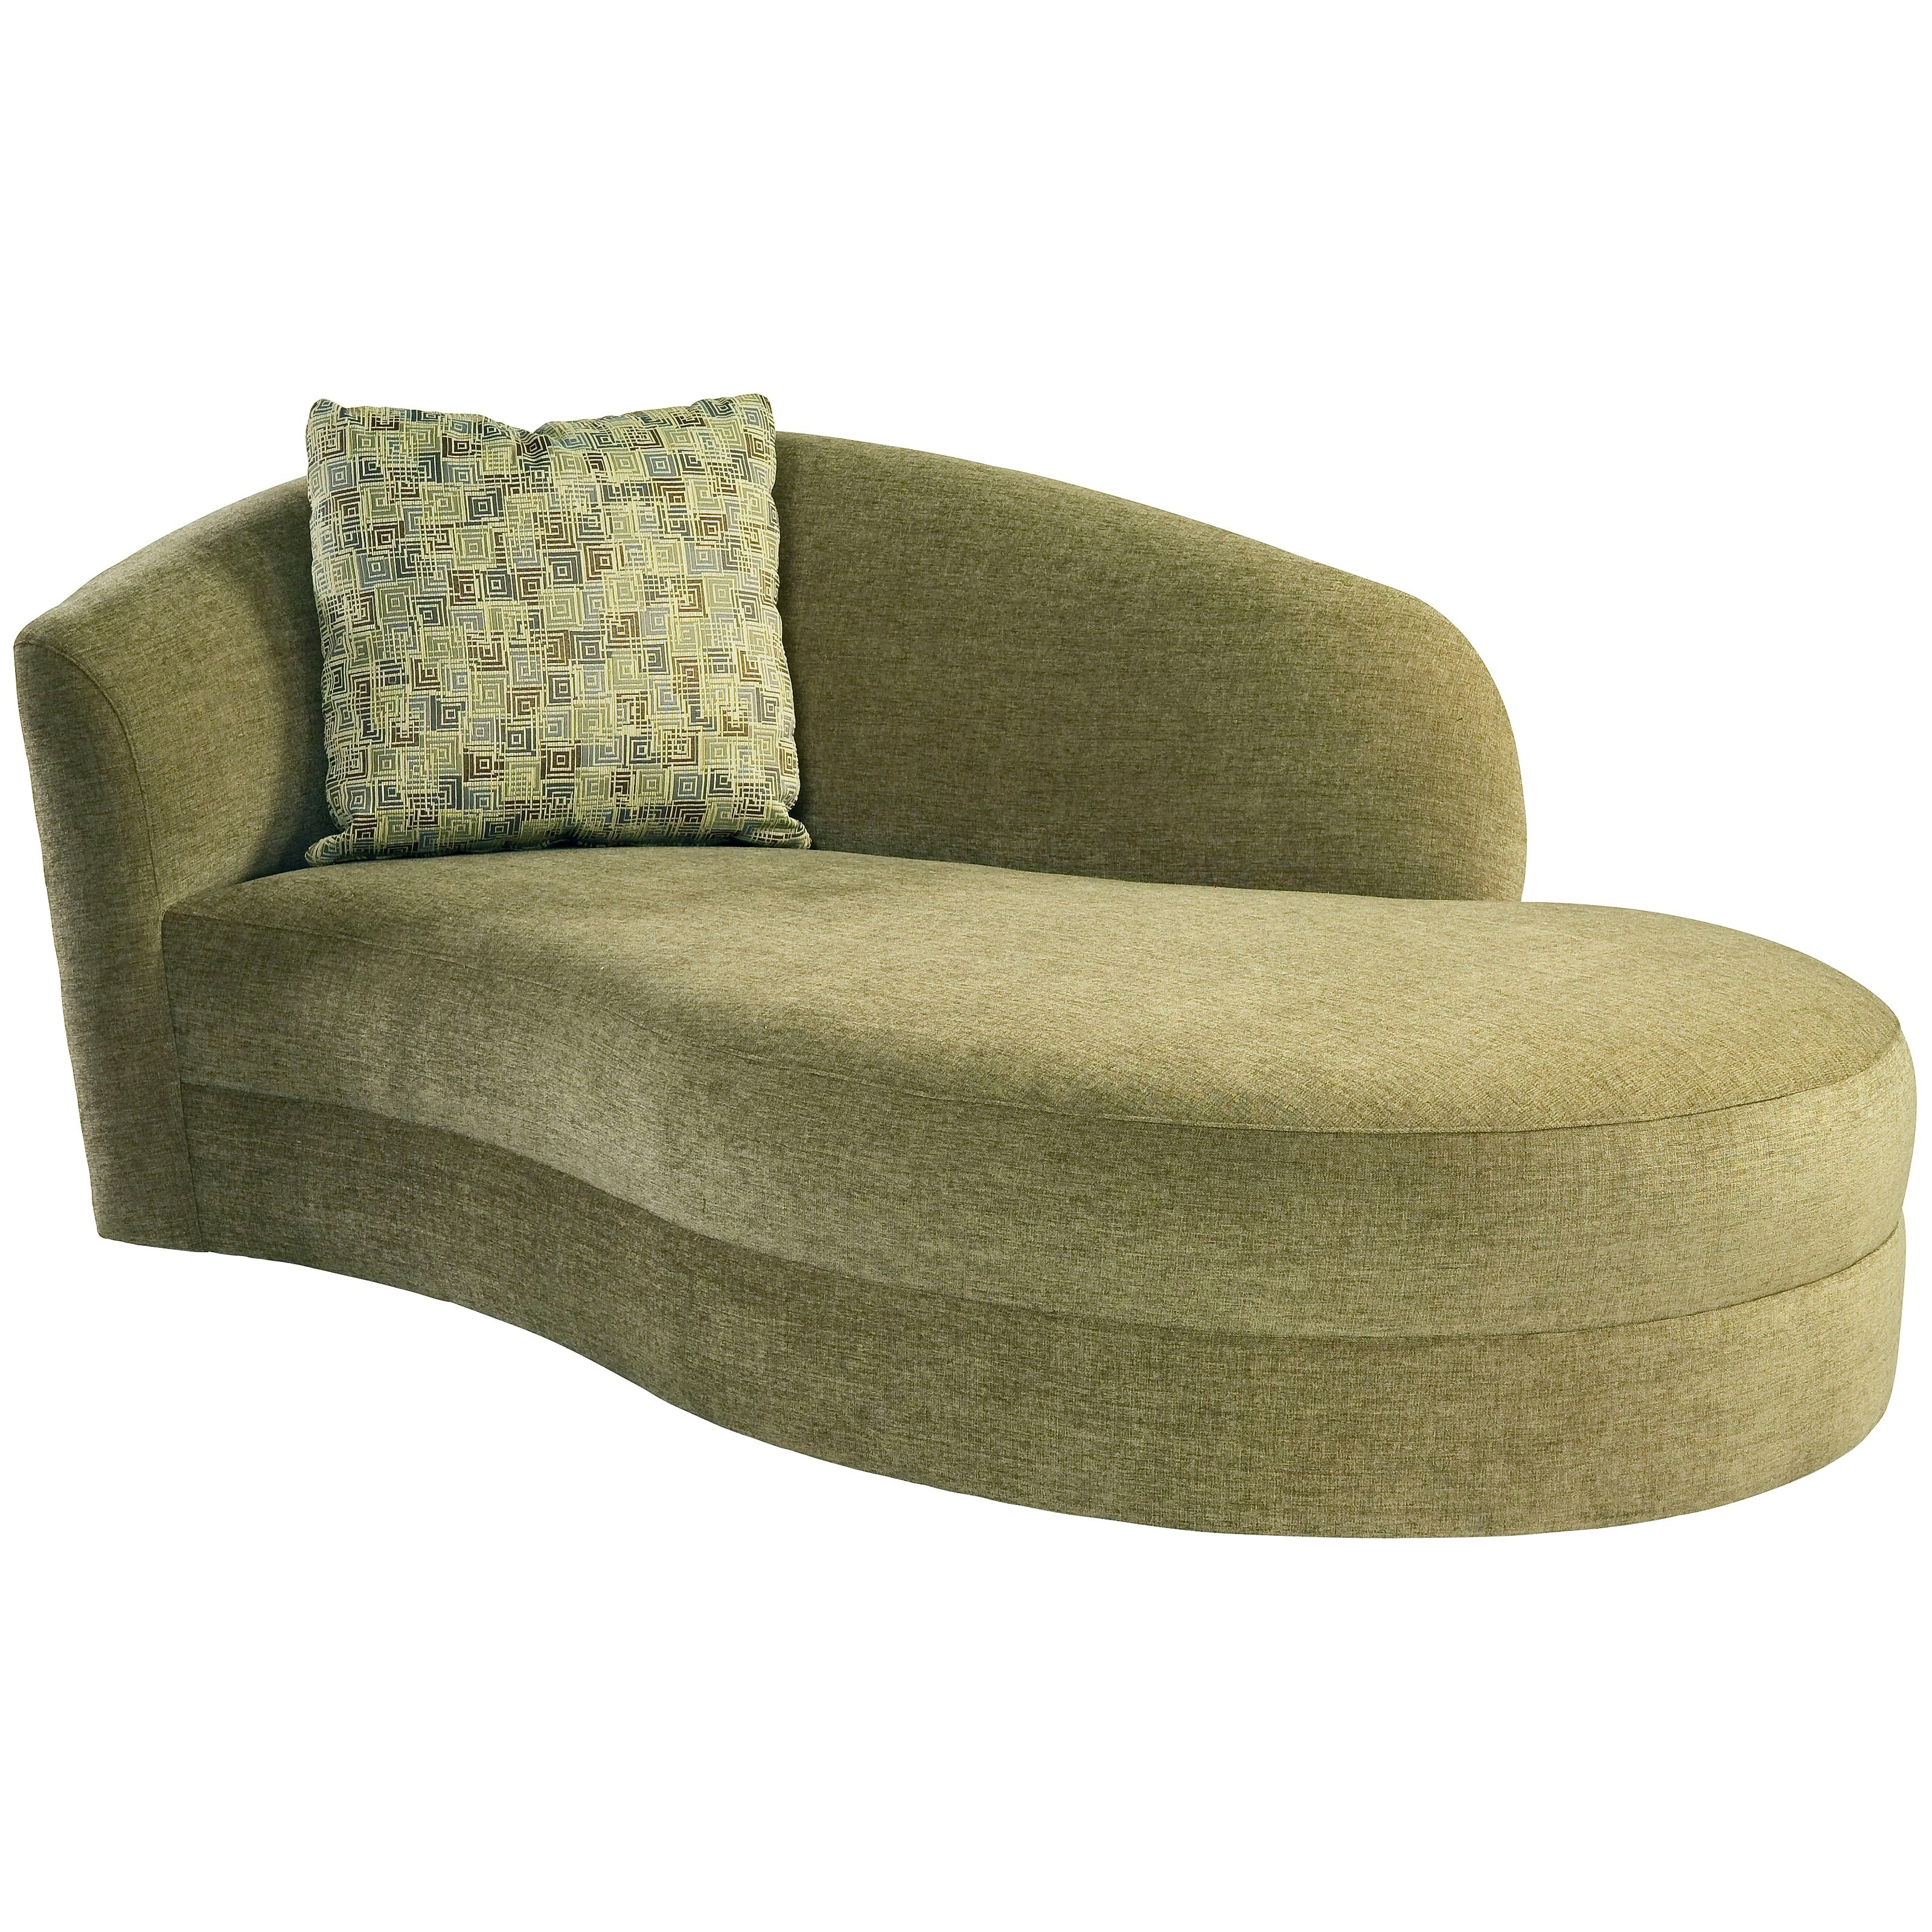 Mini Chaise Lounge Chairs Within Favorite Mini Loveseat Awesome Chaise Lounges Mini Chaise Lounge Buy Long (View 12 of 15)